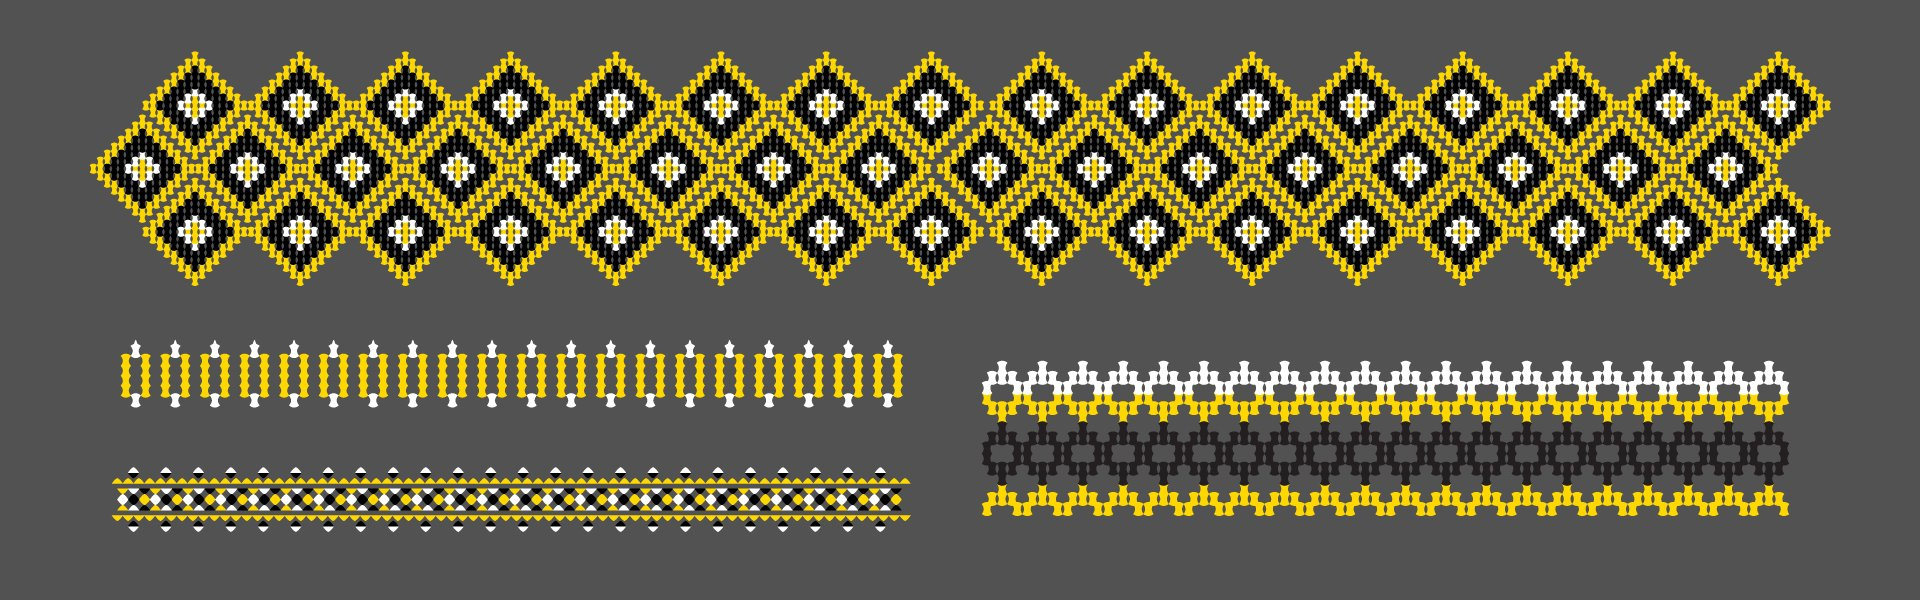 Patterns Design